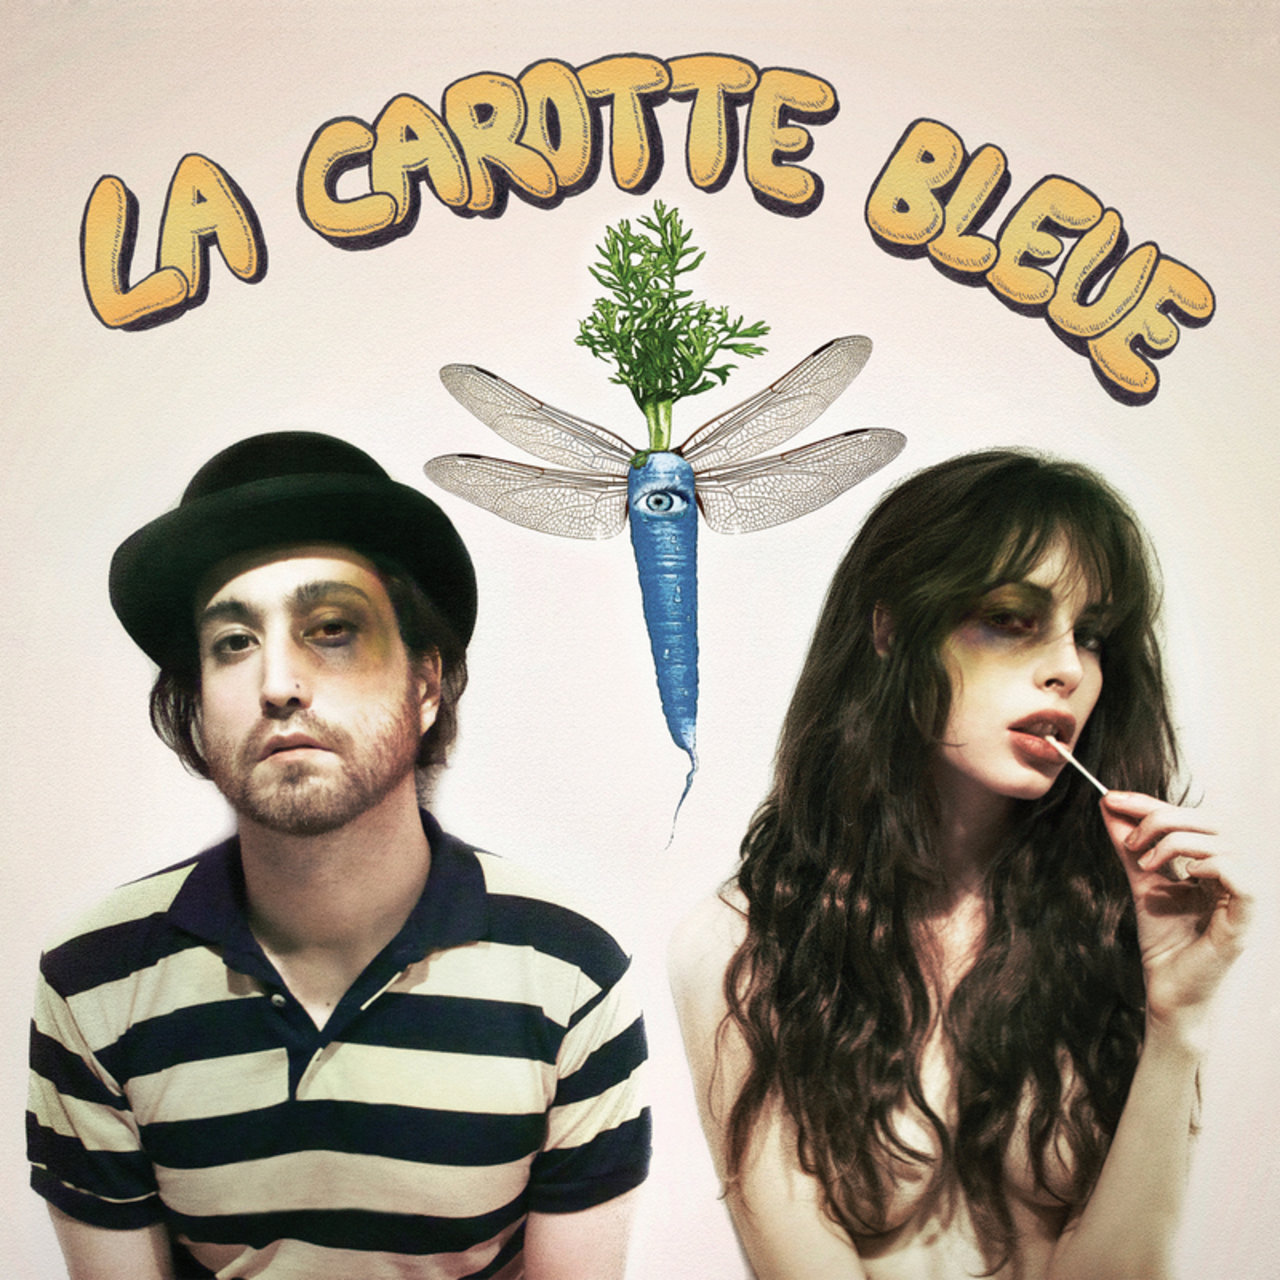 Carotte Bleue avec tidal: listen to the goastt (the ghost of a saber tooth tiger) on tidal